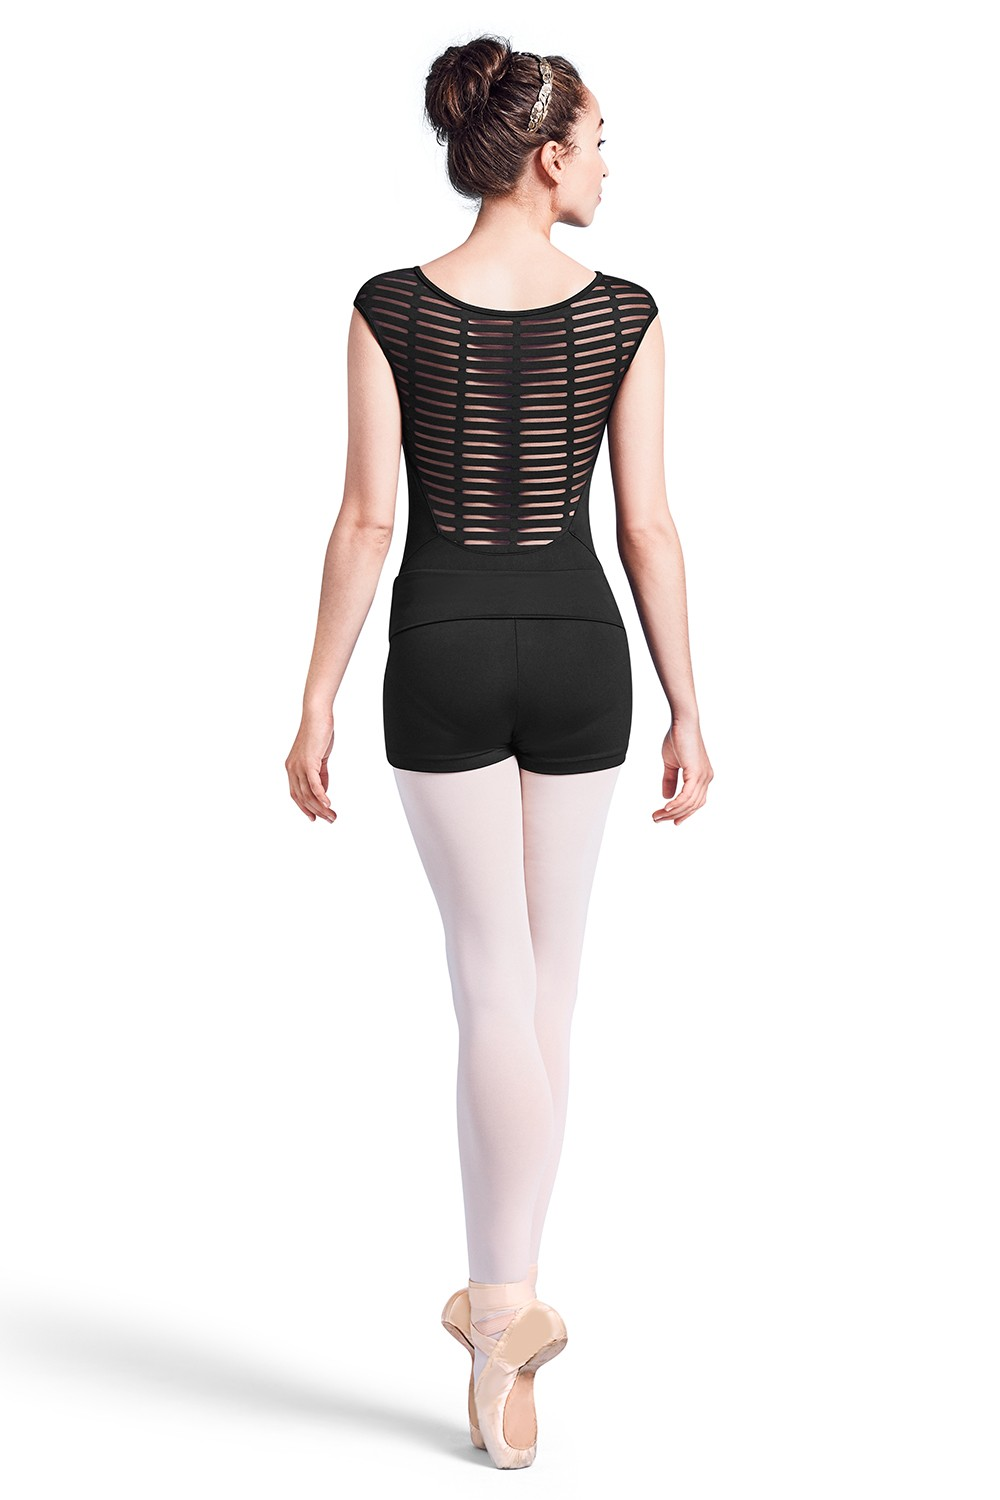 Justaucorps Sans Manches Avec Maille Au Dos Womens Short Sleeve Leotards